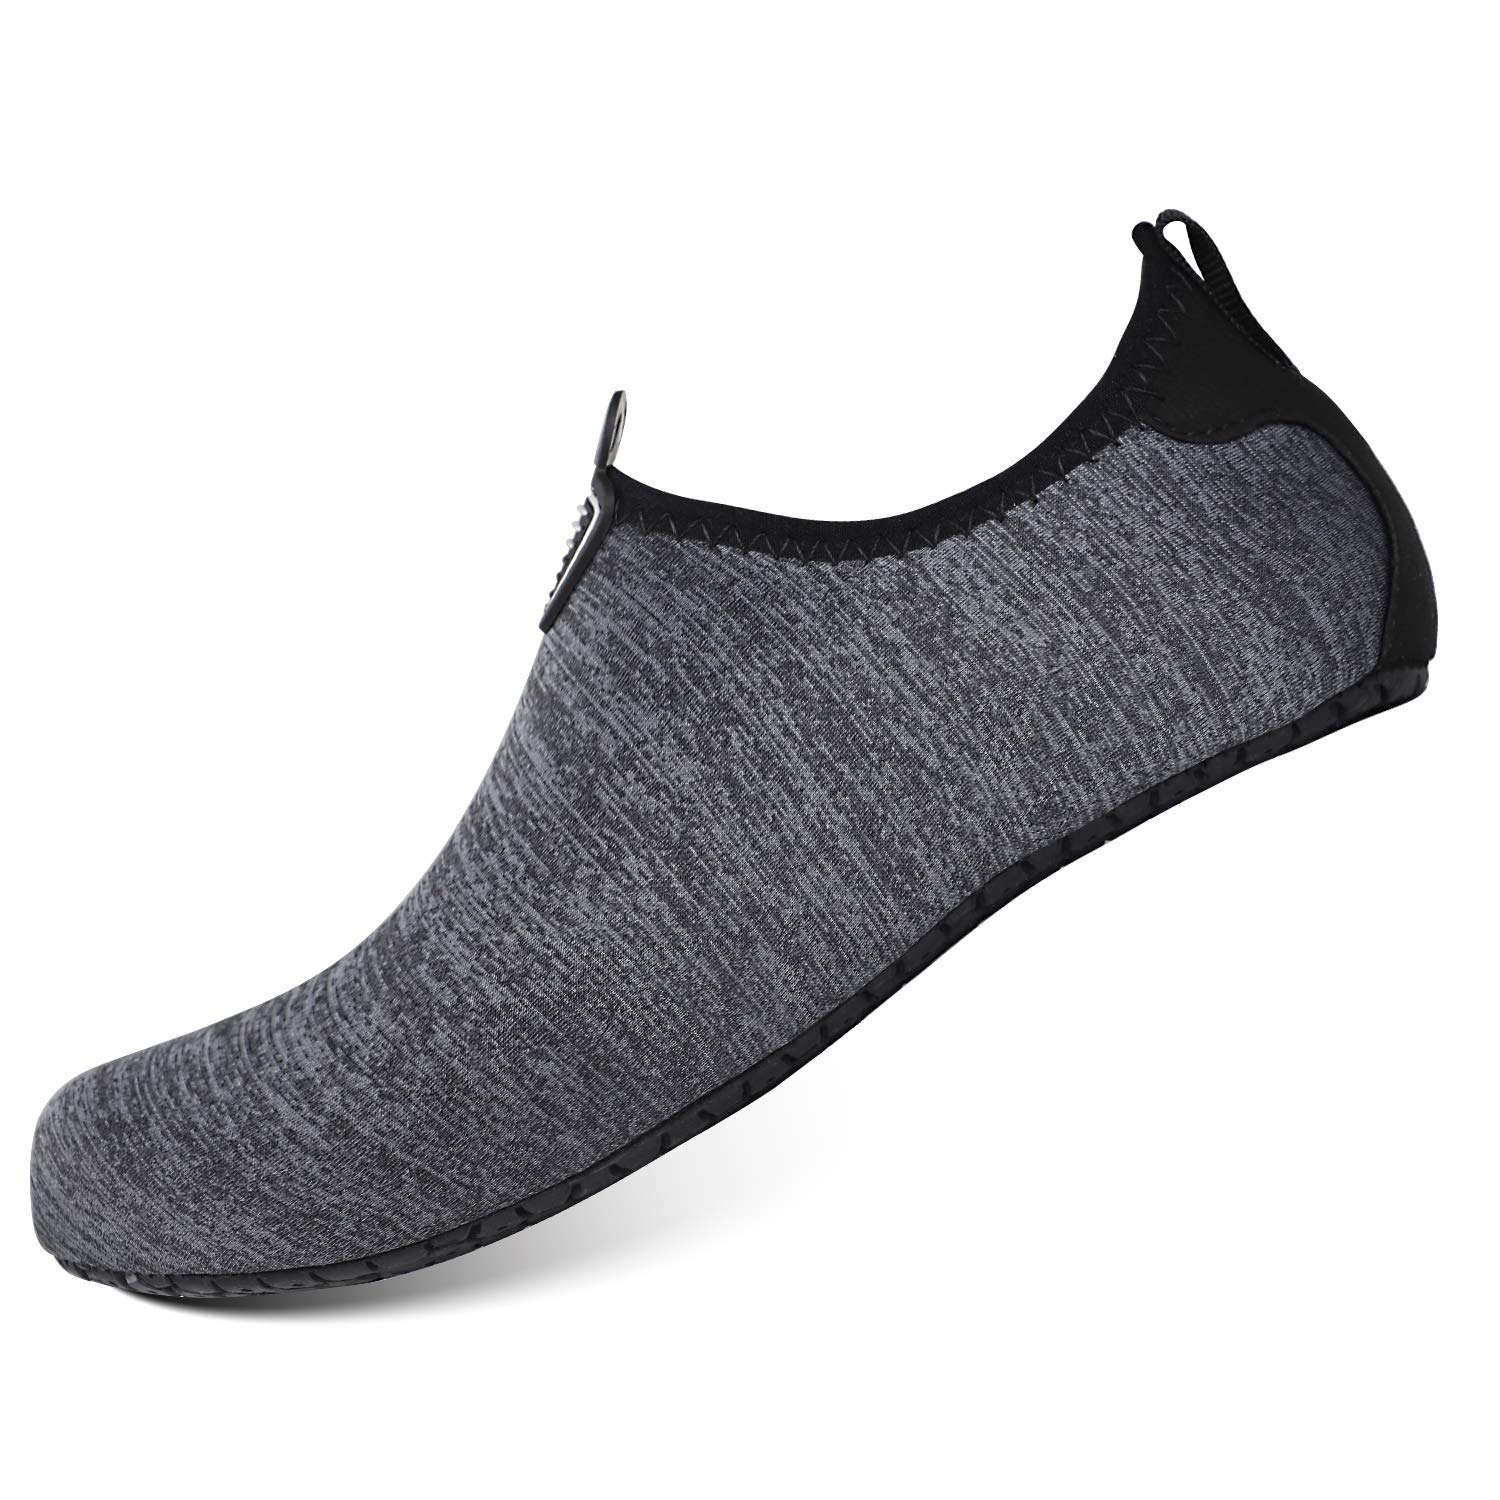 51898152e0be3 HEETA Water Sports Shoes for Women Men Quick Dry Aqua Socks Swim Barefoot  Pool Beach Shoes for All Water Sport Black_E XXXL